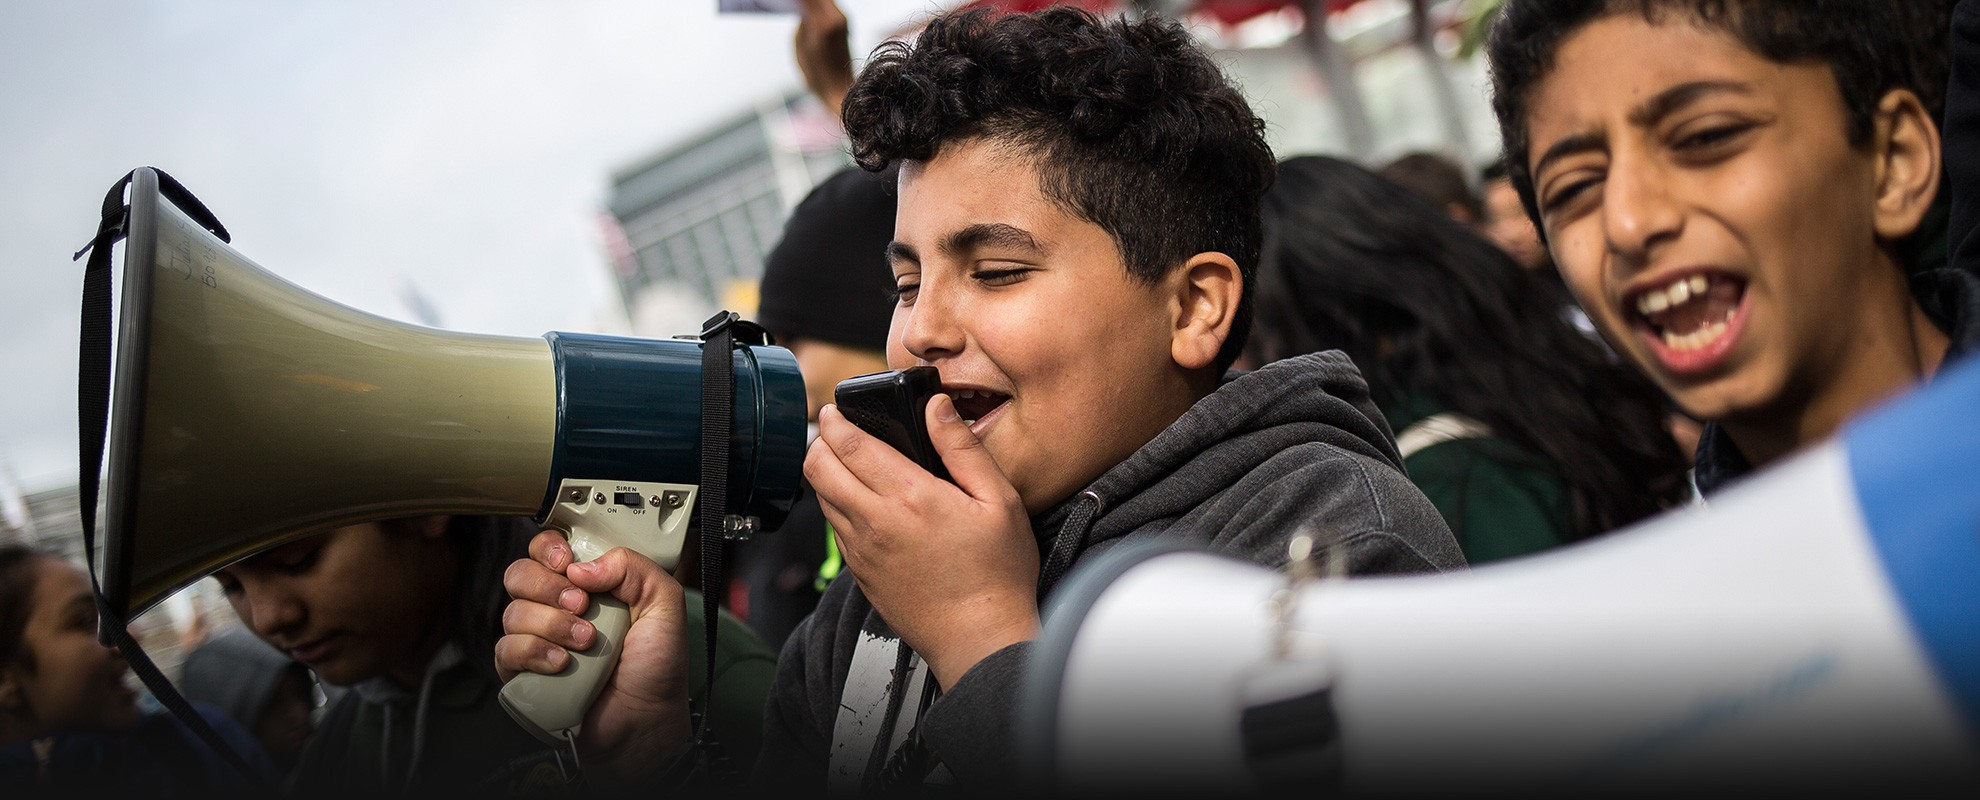 Adam Abdo Alshuga (right), 11-years-old, marches alongside Zakaria Homran, 13-years-old, with a megaphone.